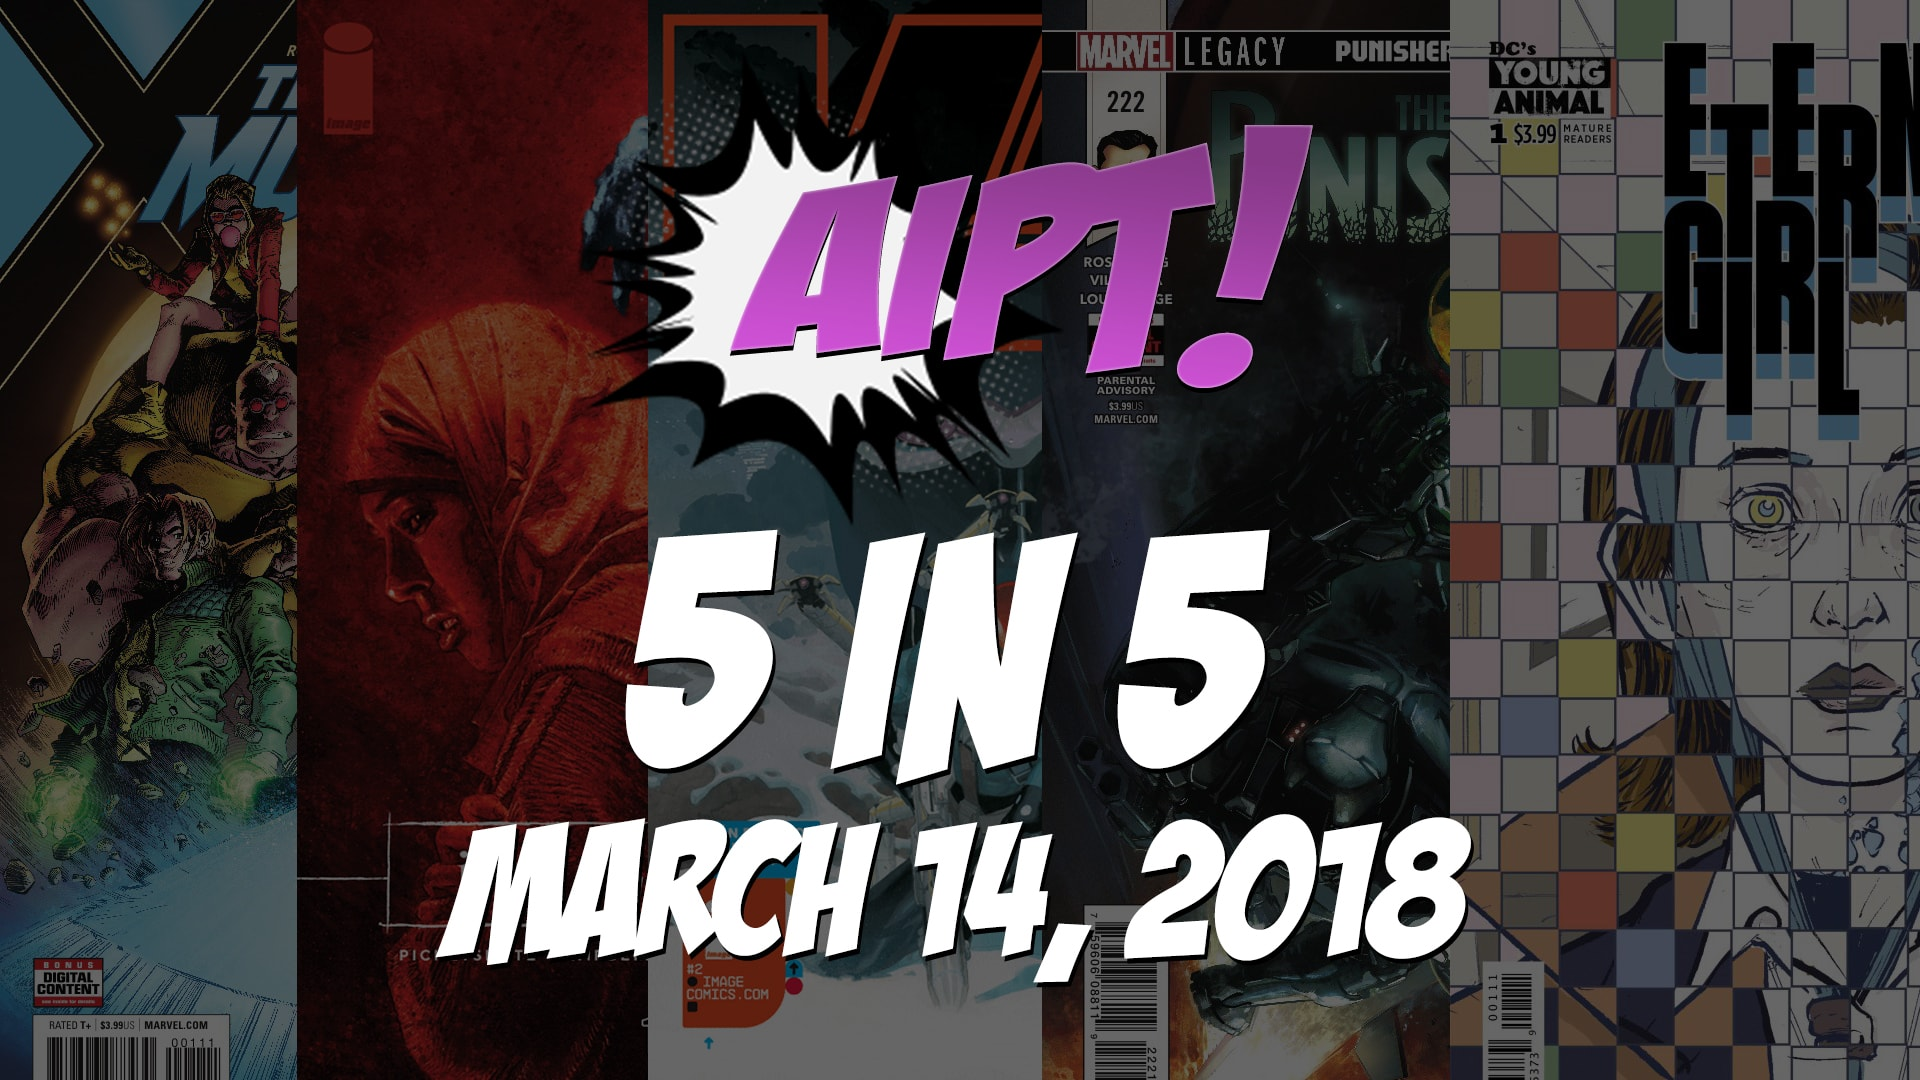 March 14, 2018's 5 in 5: The five comic books you should buy this week